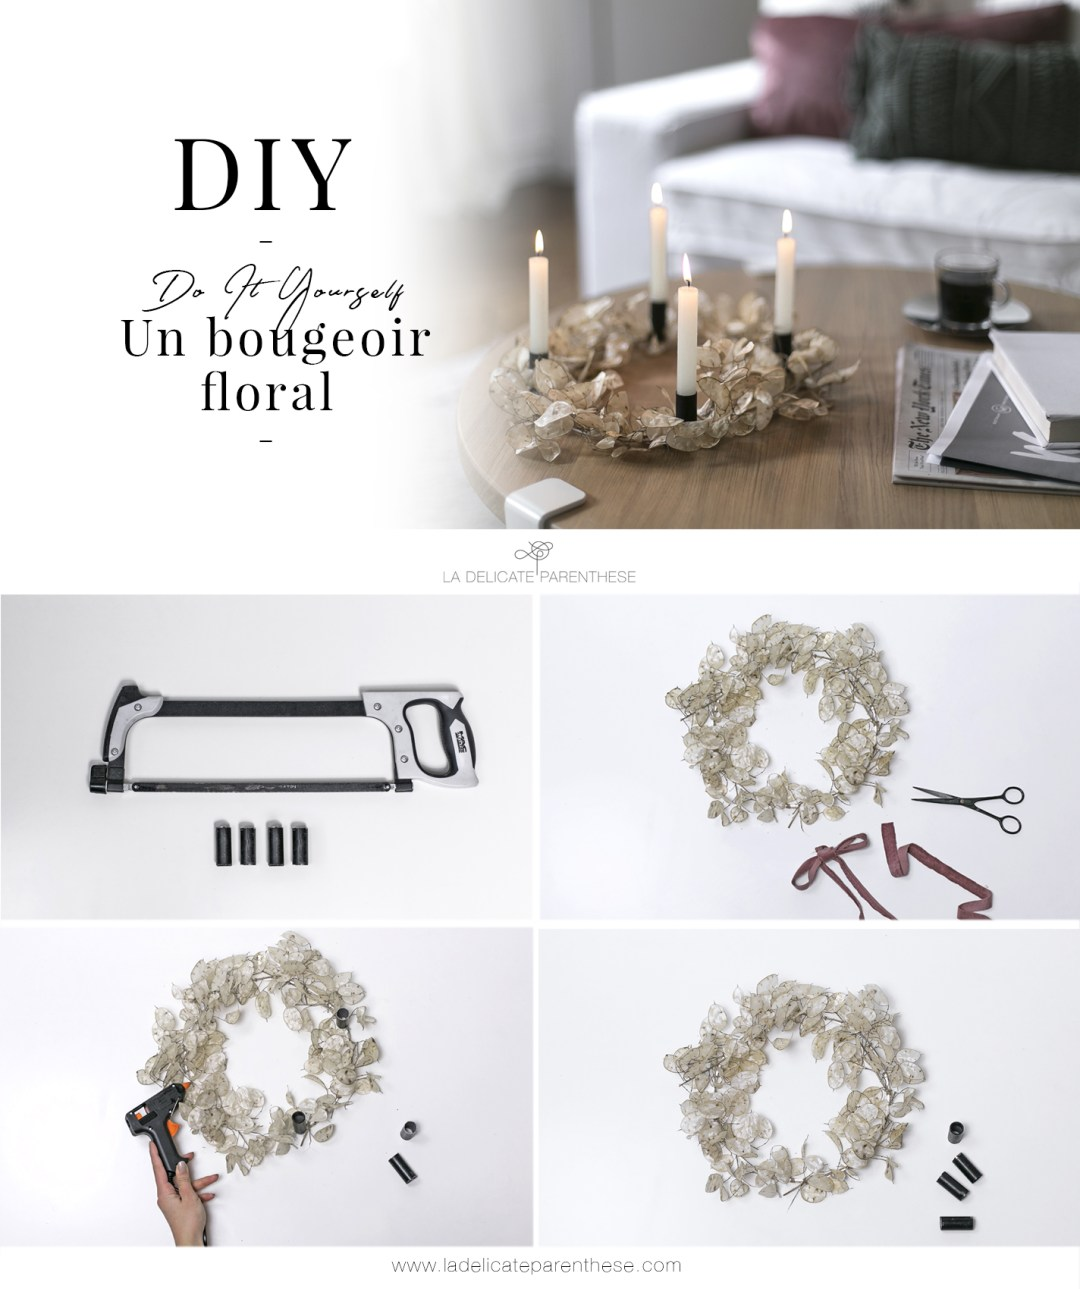 DIY handmade création interior design bougeoir